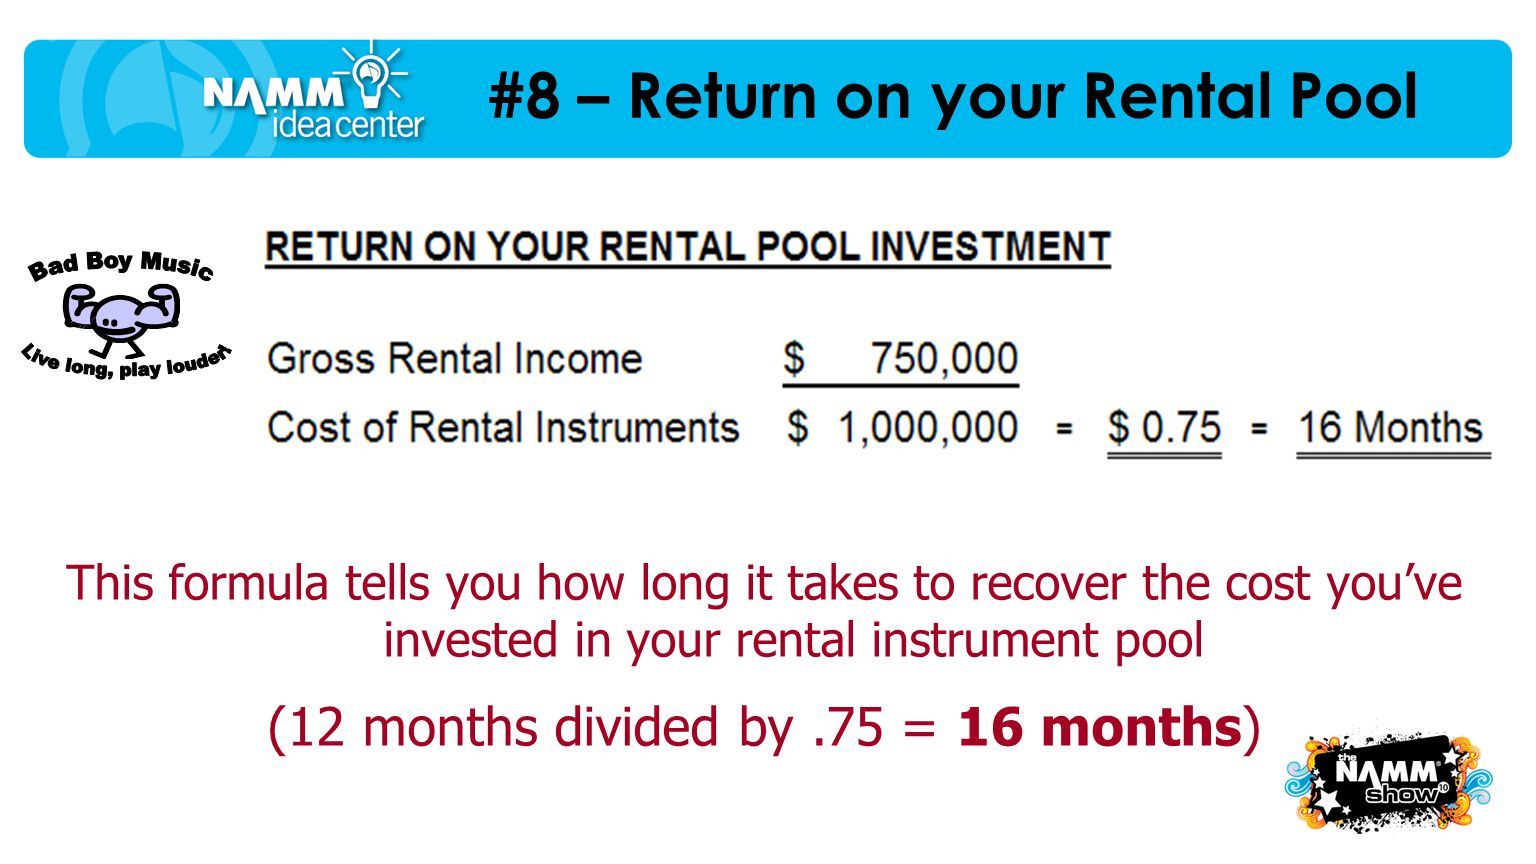 This formula tells you how long it takes to recover the cost you've invested in your rental instrument pool (12 months divided by.75 = 16 months)